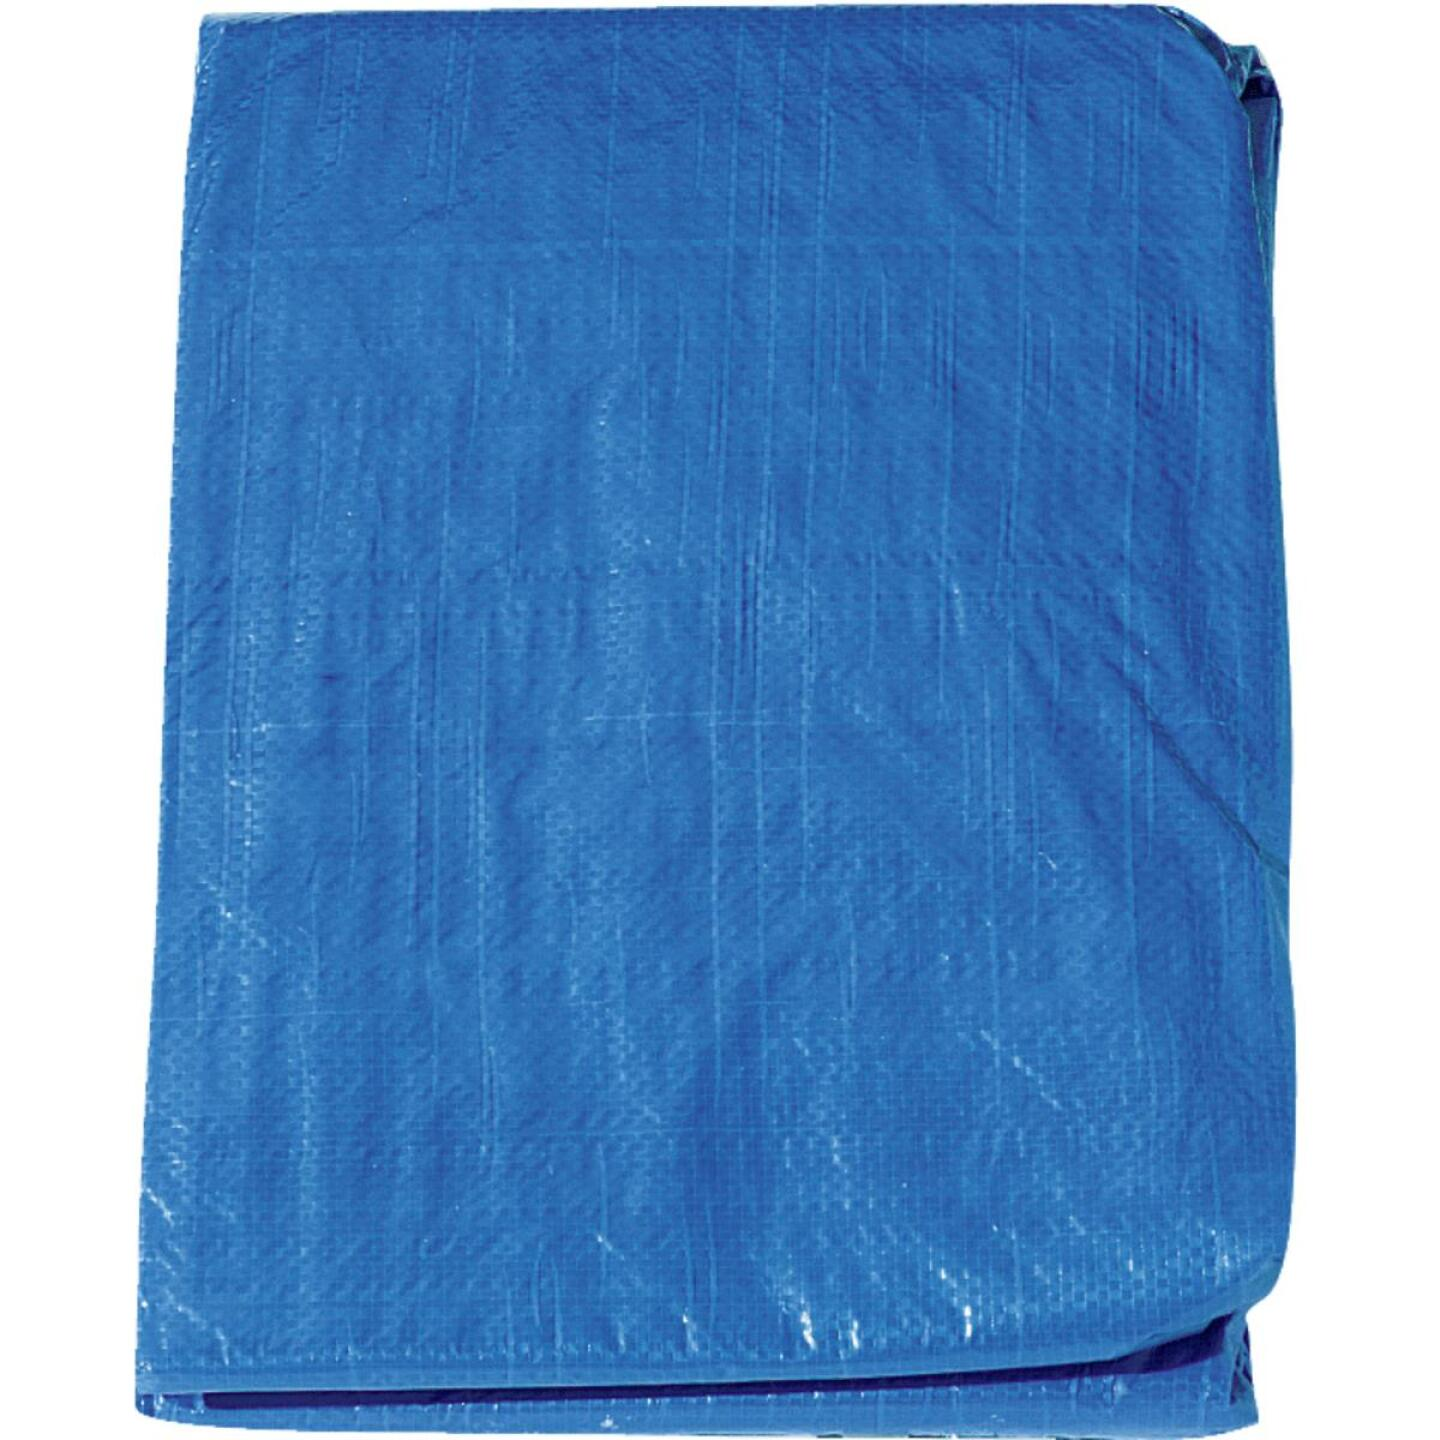 Do it Blue Woven 10 Ft. x 20 Ft. Medium Duty Poly Tarp Image 2